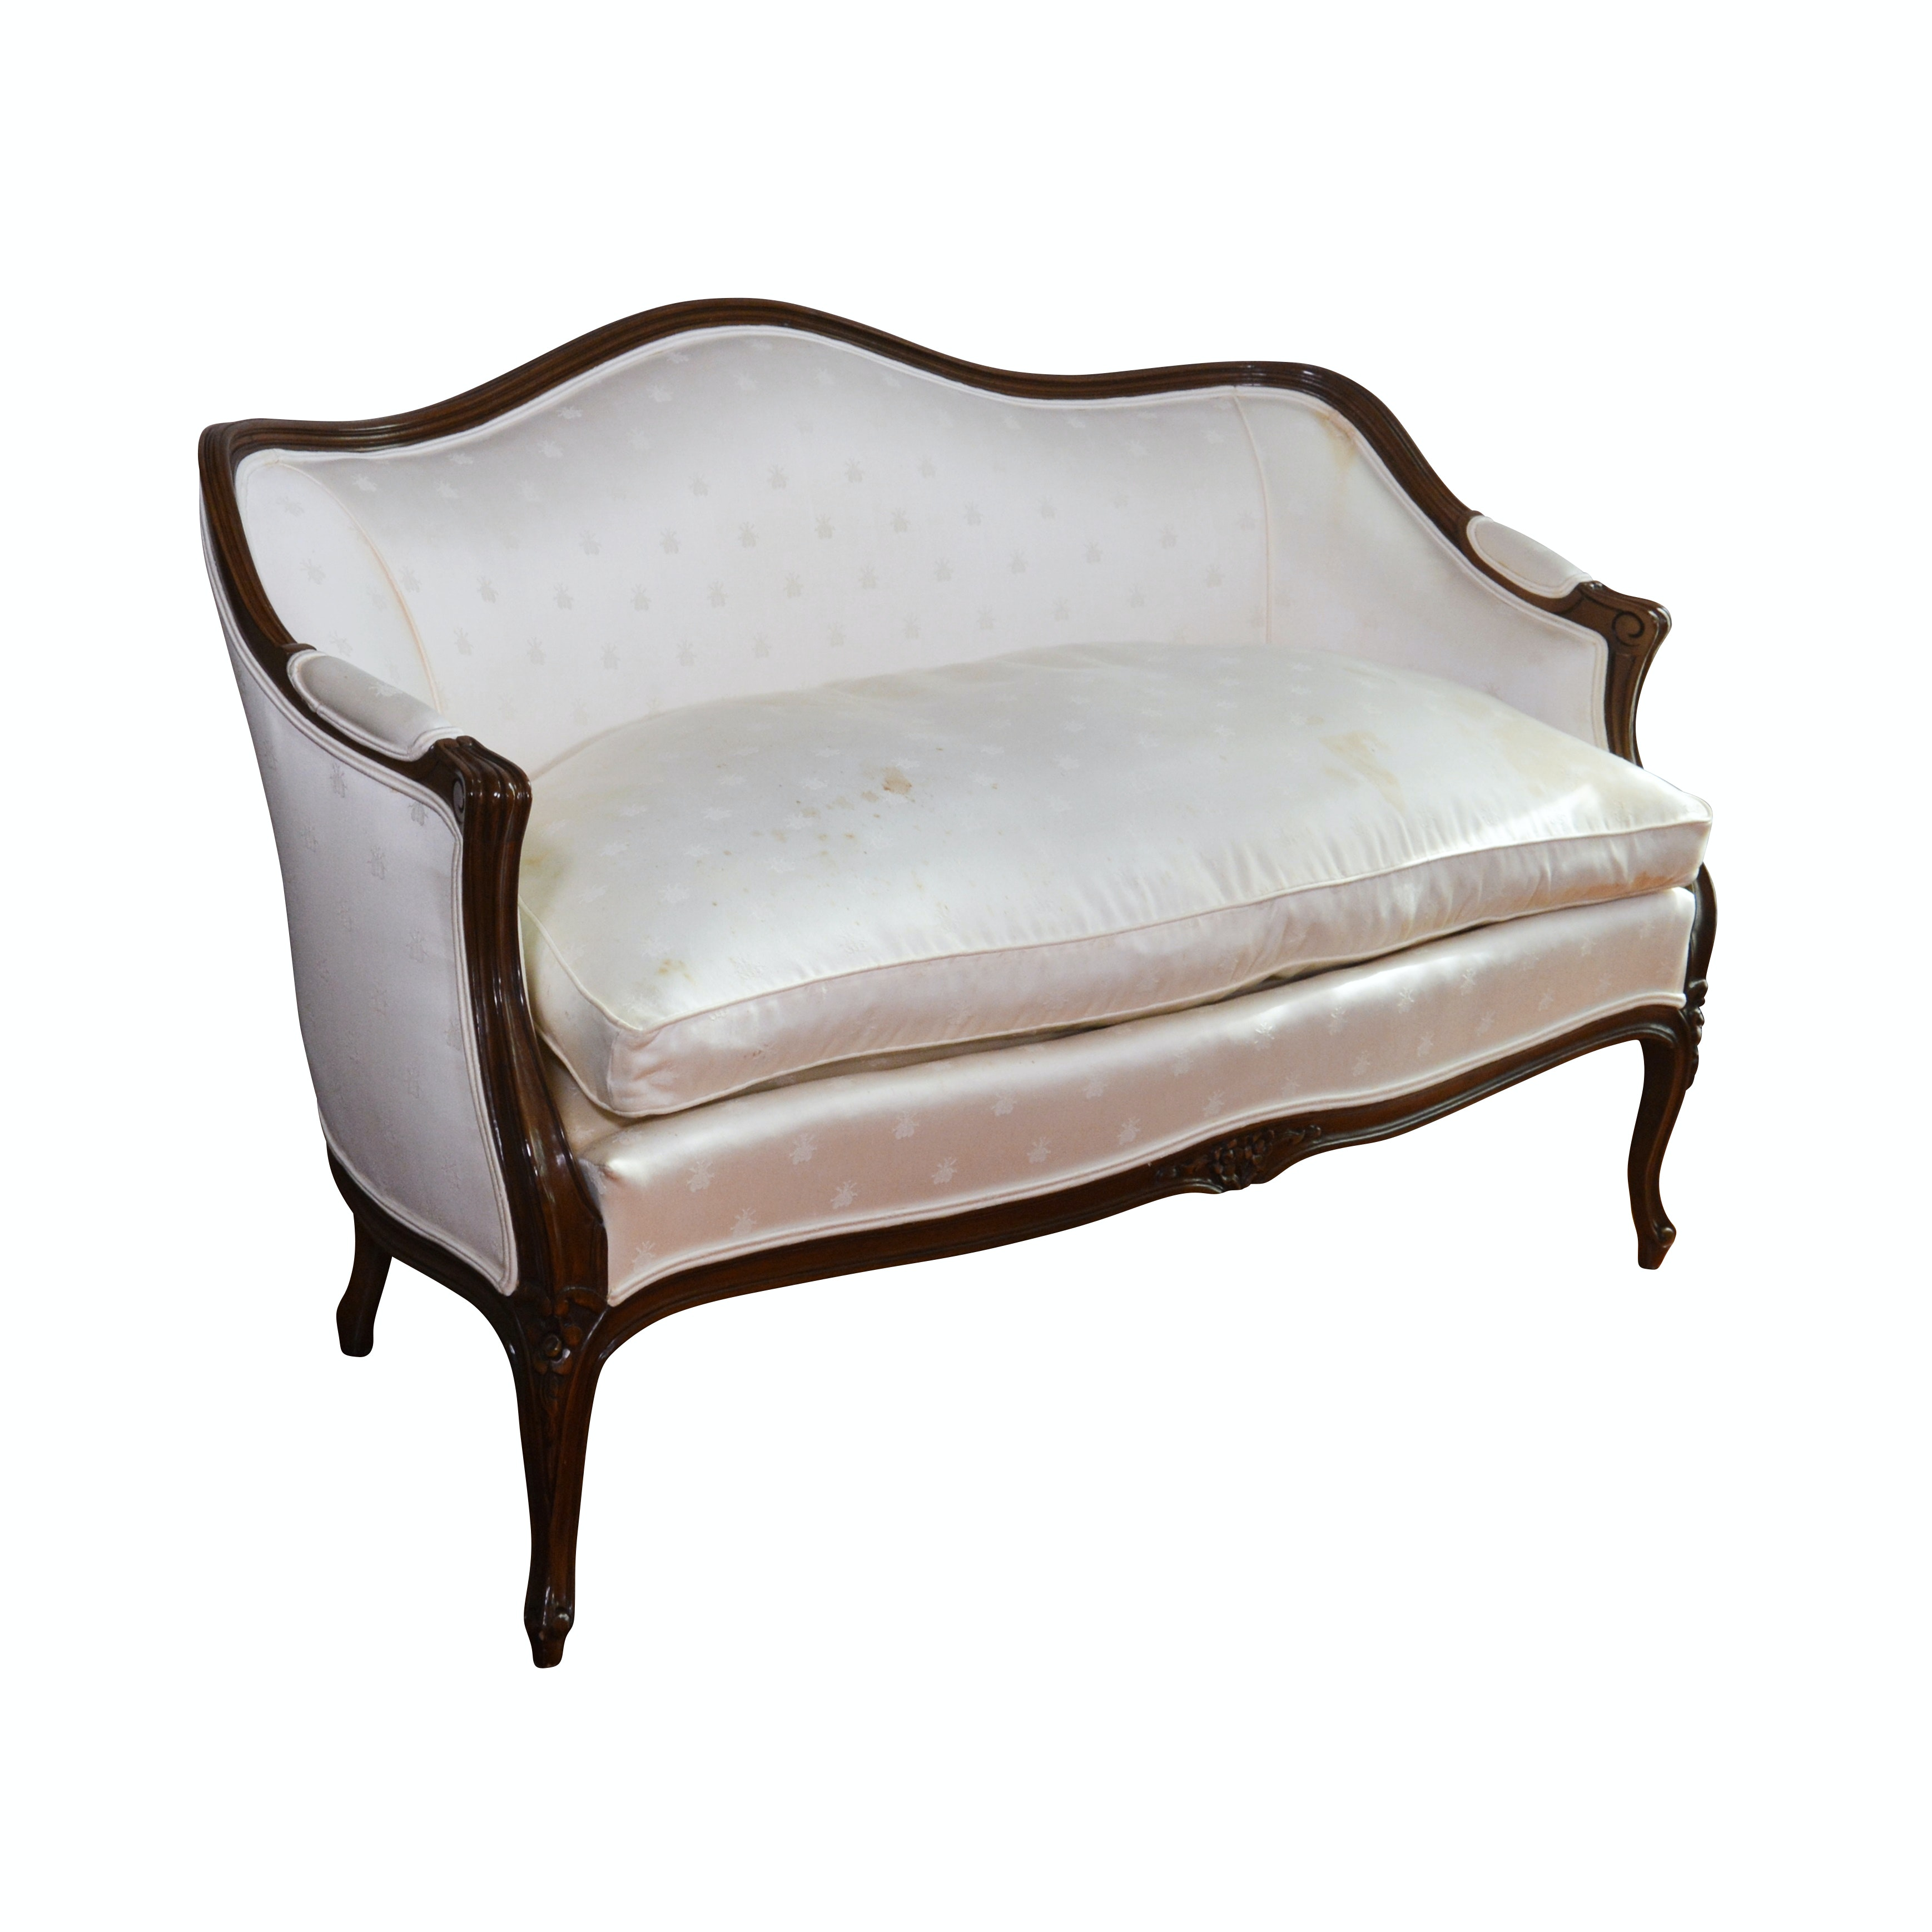 Karges Louis XV Wooden Upholstered Settee, Contemporary